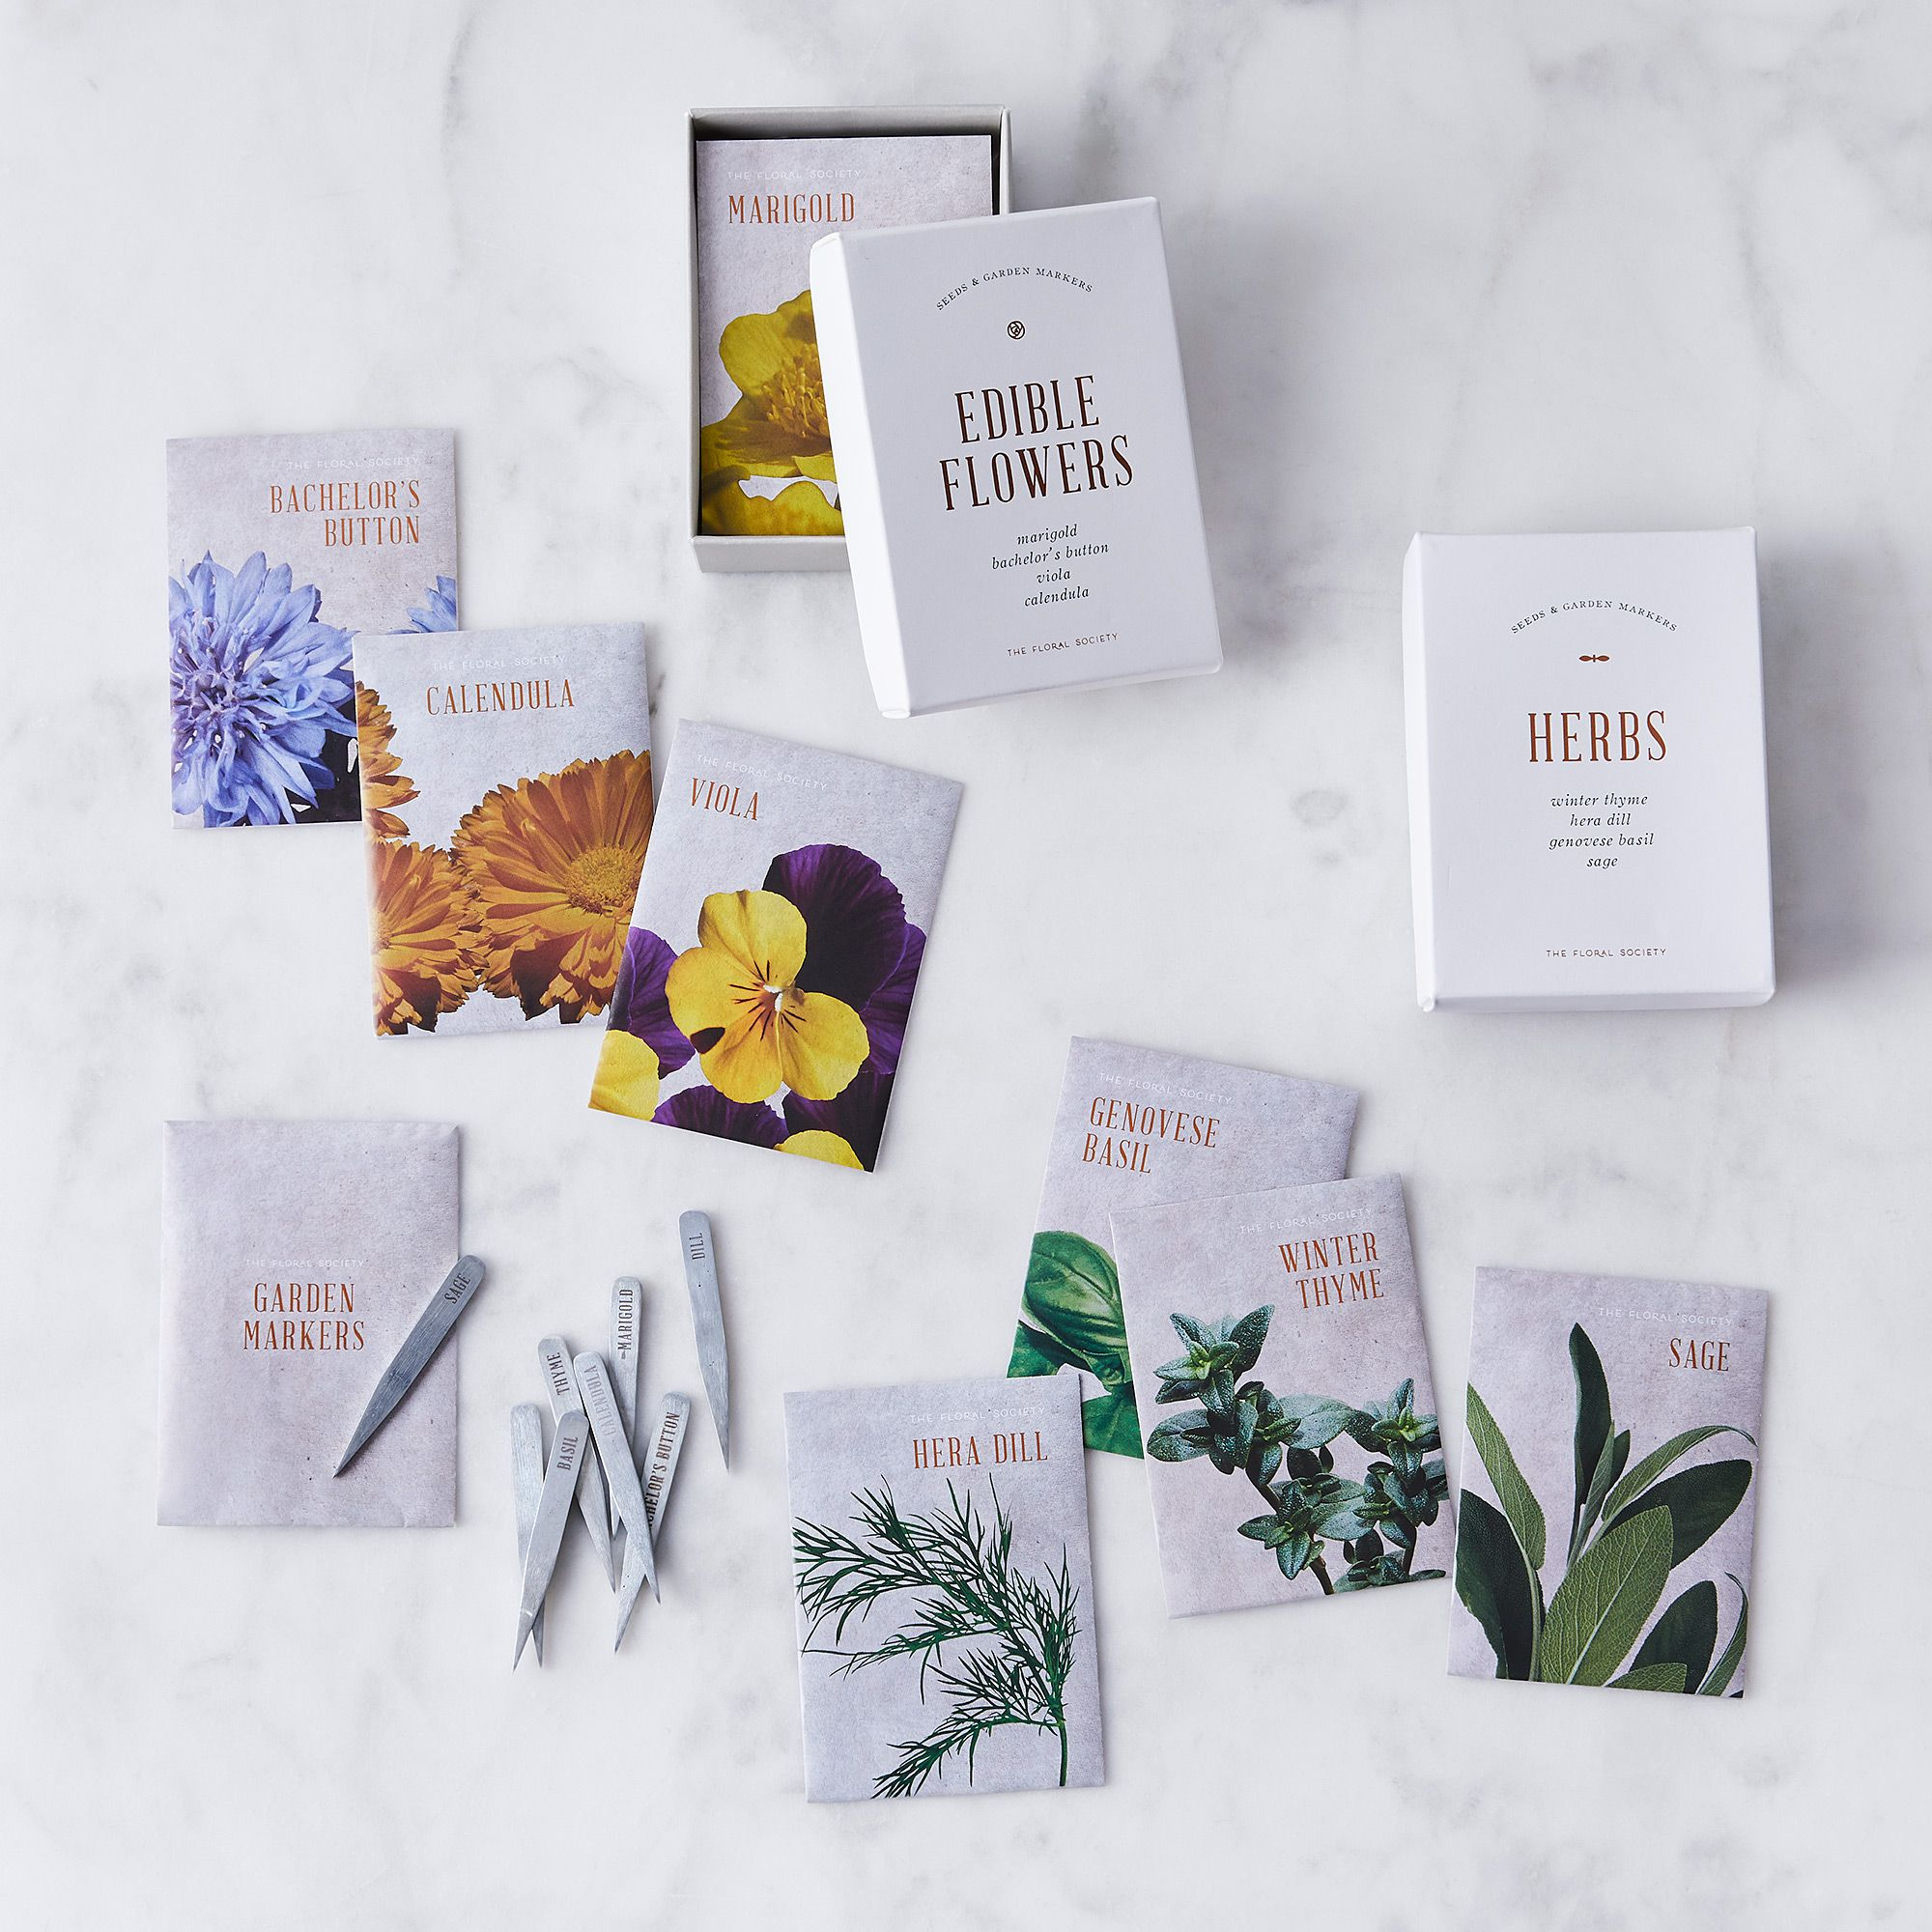 The Floral Society Herb & Edible Flower Seed Gift Boxes